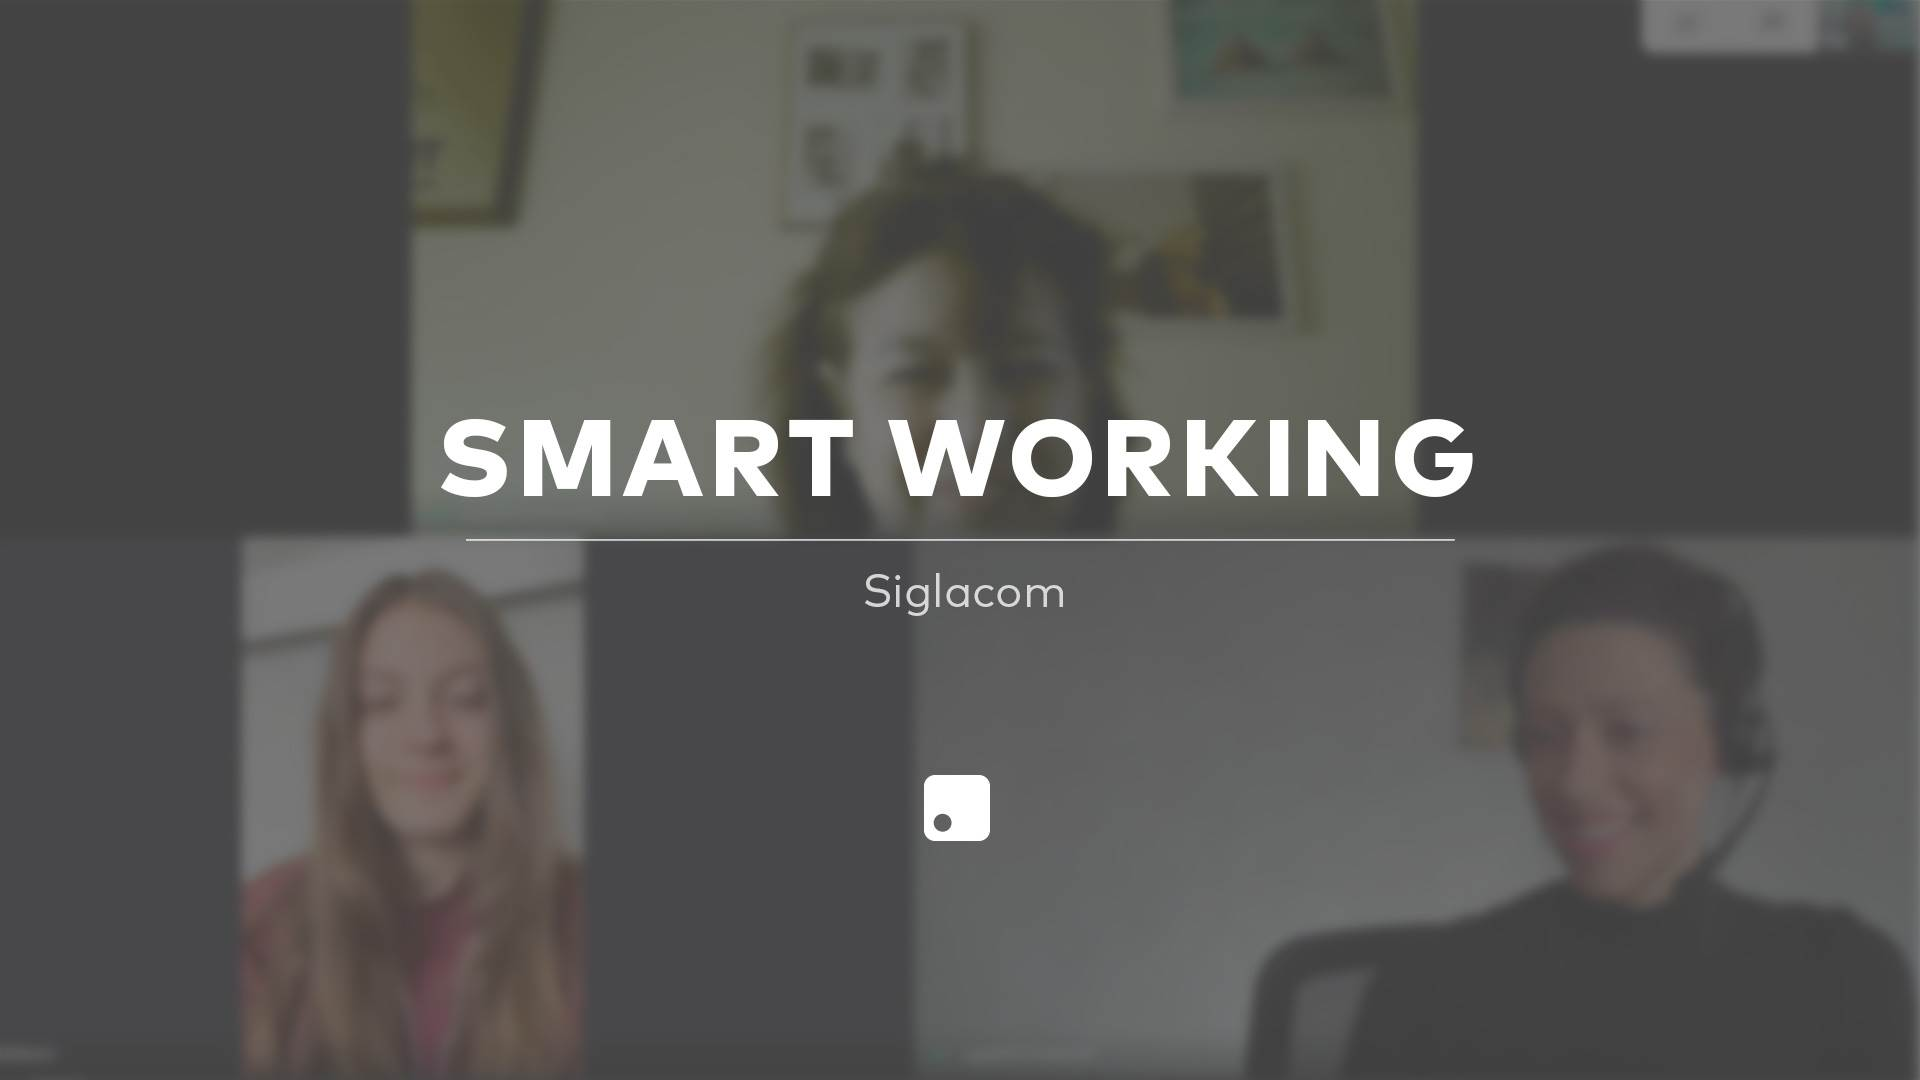 Smart Working consulting